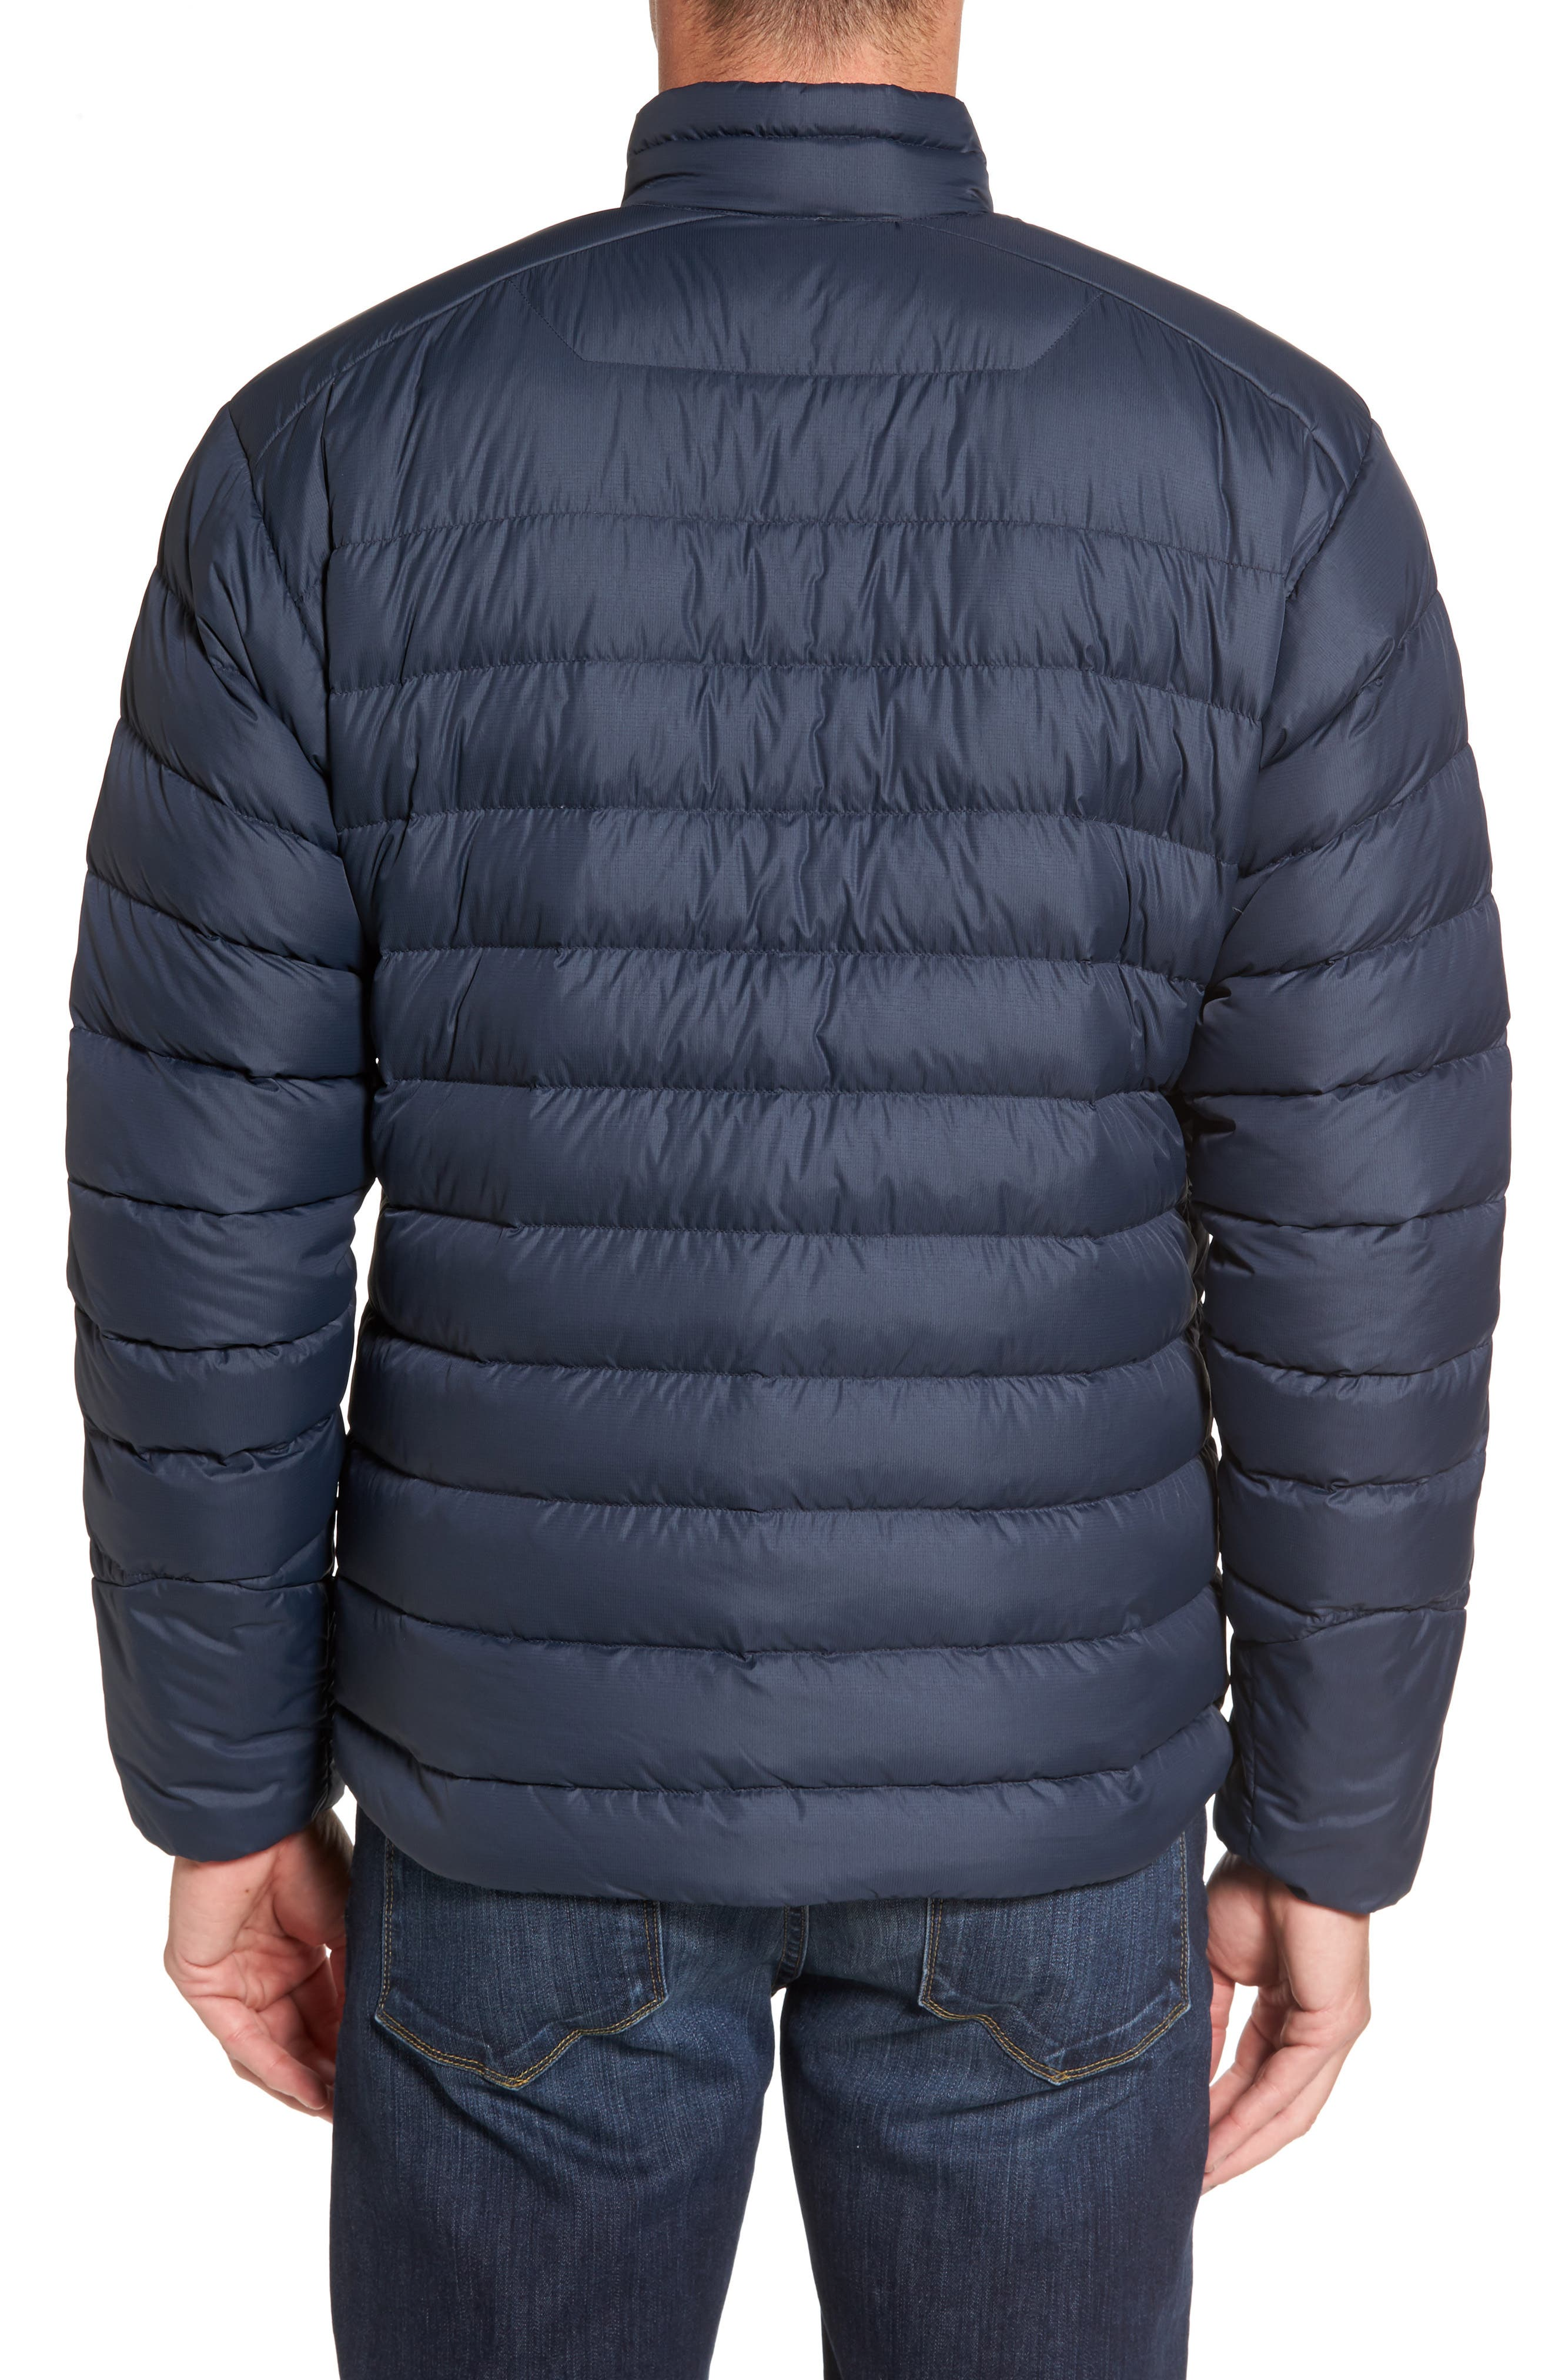 Thorium AR Water Resistant 750 Fill Power Down Jacket,                             Alternate thumbnail 2, color,                             400